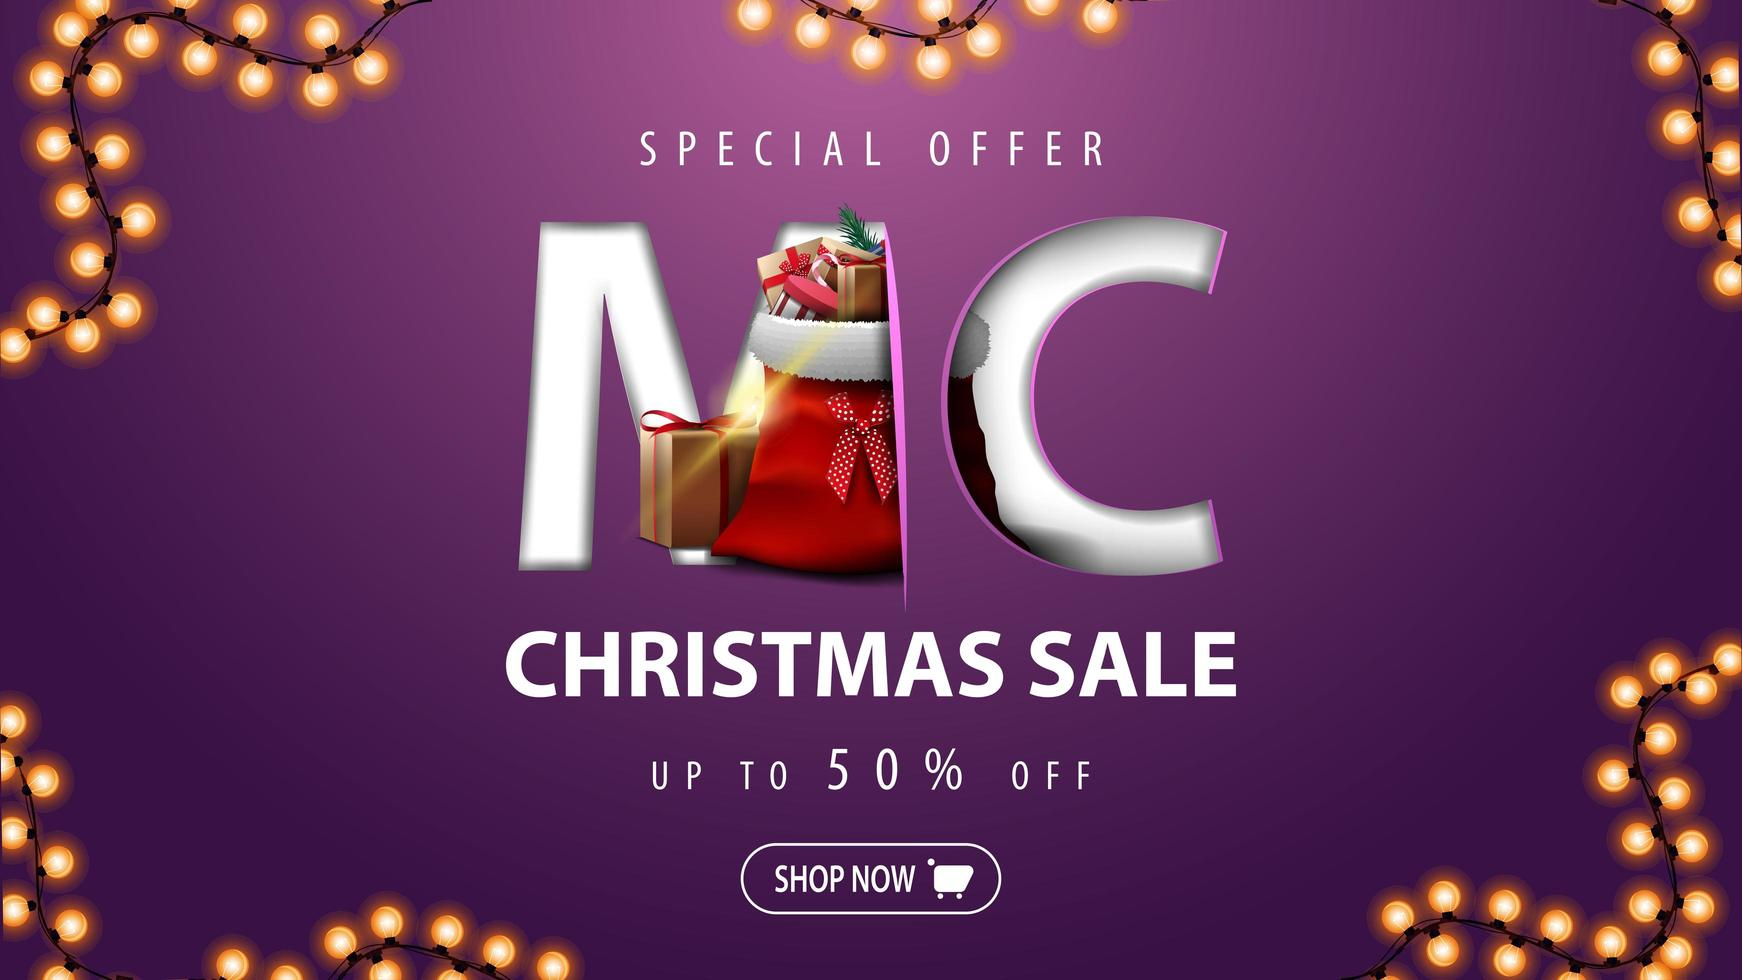 Christmas sale, up to 50 off, beautiful discount banner in minimalism style with garland and Santa Claus bag with presents vector